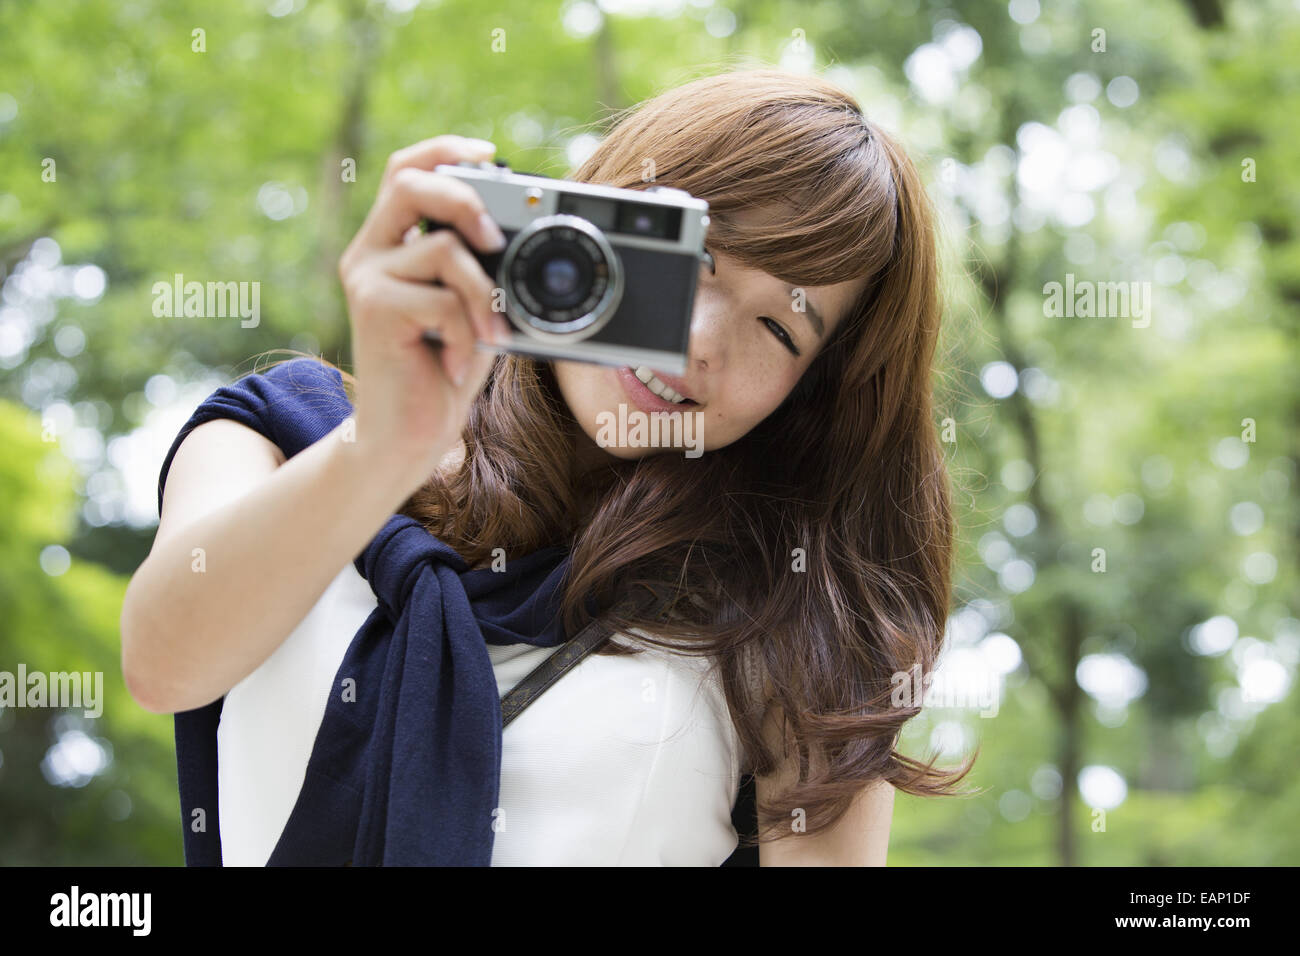 A woman in a Kyoto park holding a camera and laughing. - Stock Image